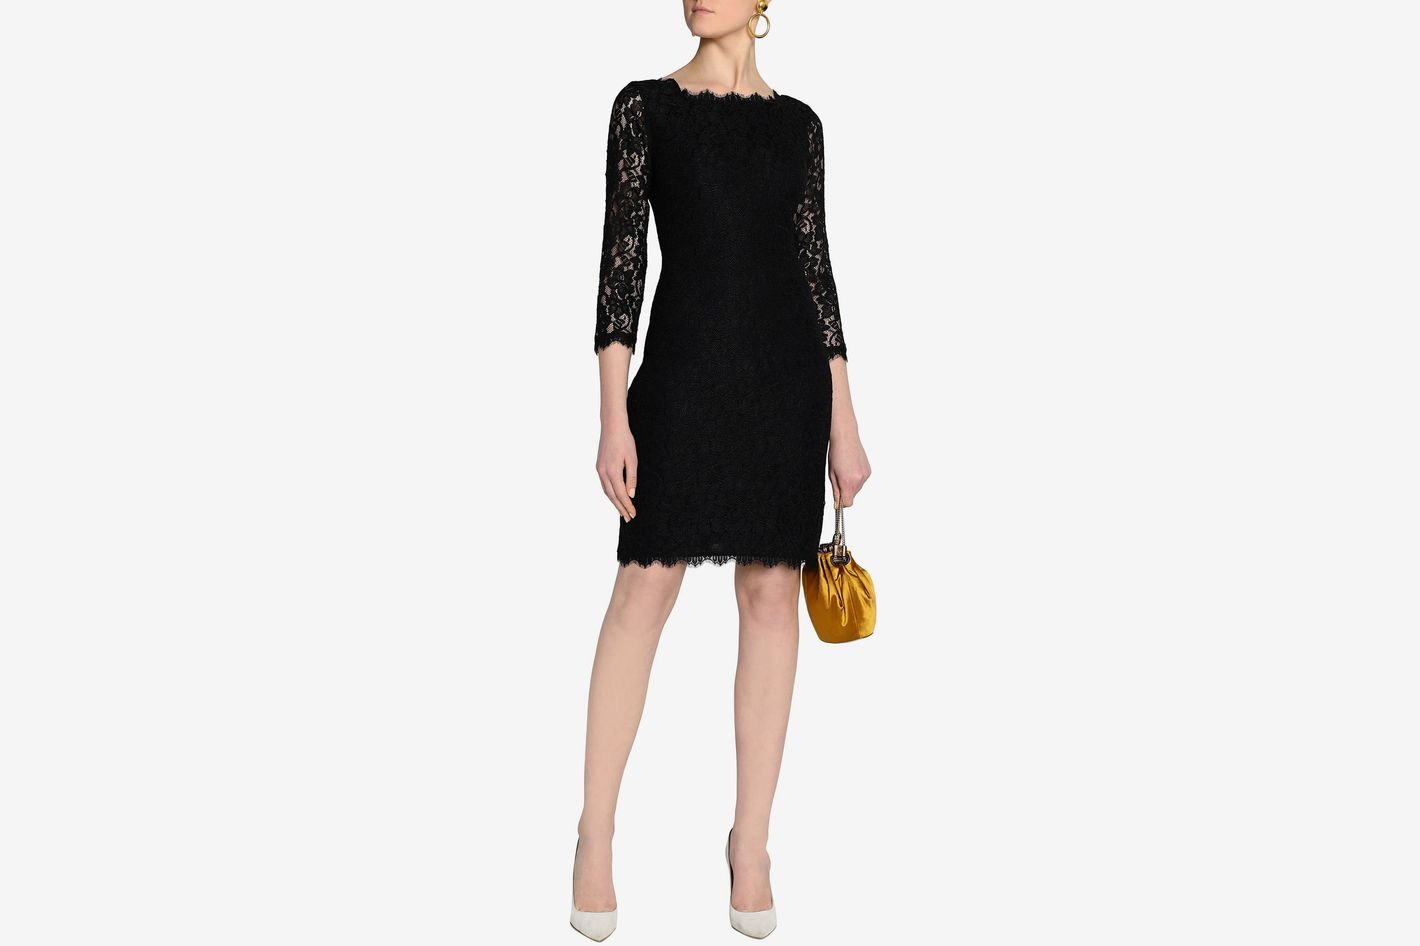 DIANE VON FURSTENBERG Scalloped corded lace dress